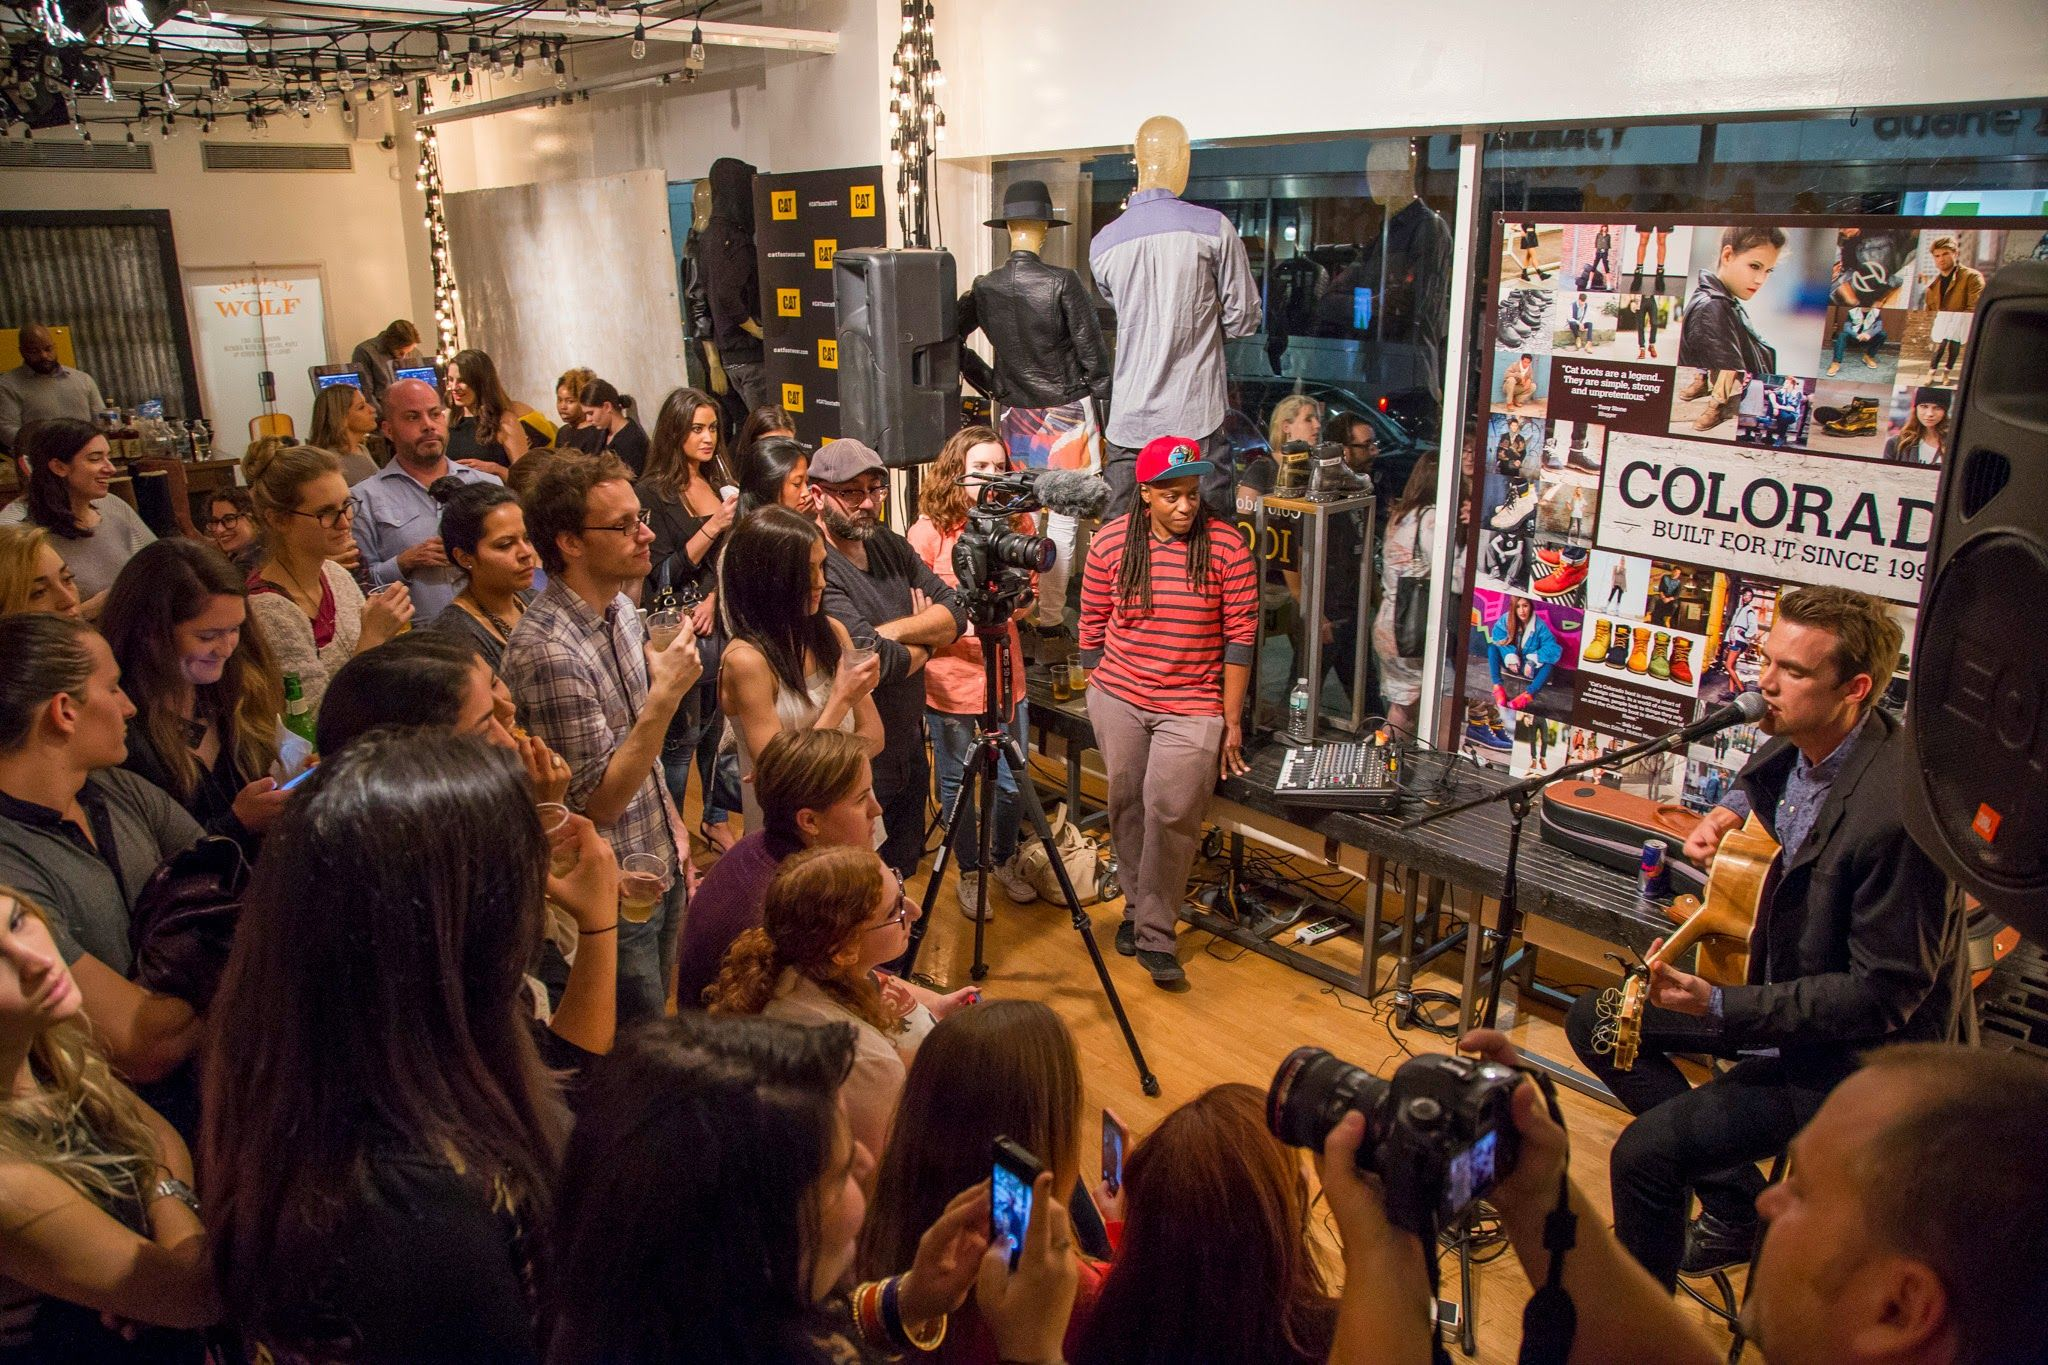 Our Earthmover Tyler Hilton Performing A Private Concert For Fans At Our Nyc Pop